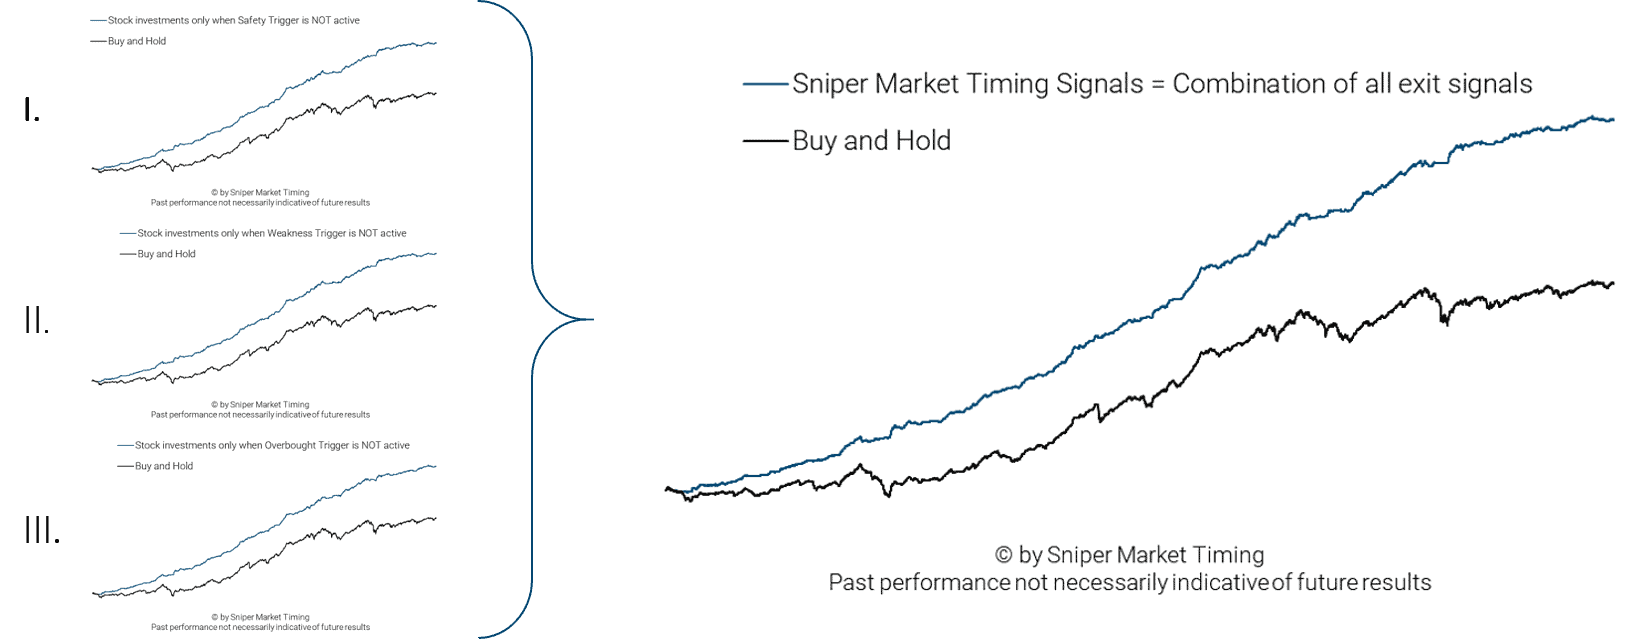 Stock market investment stratey as combination of all three exit signals